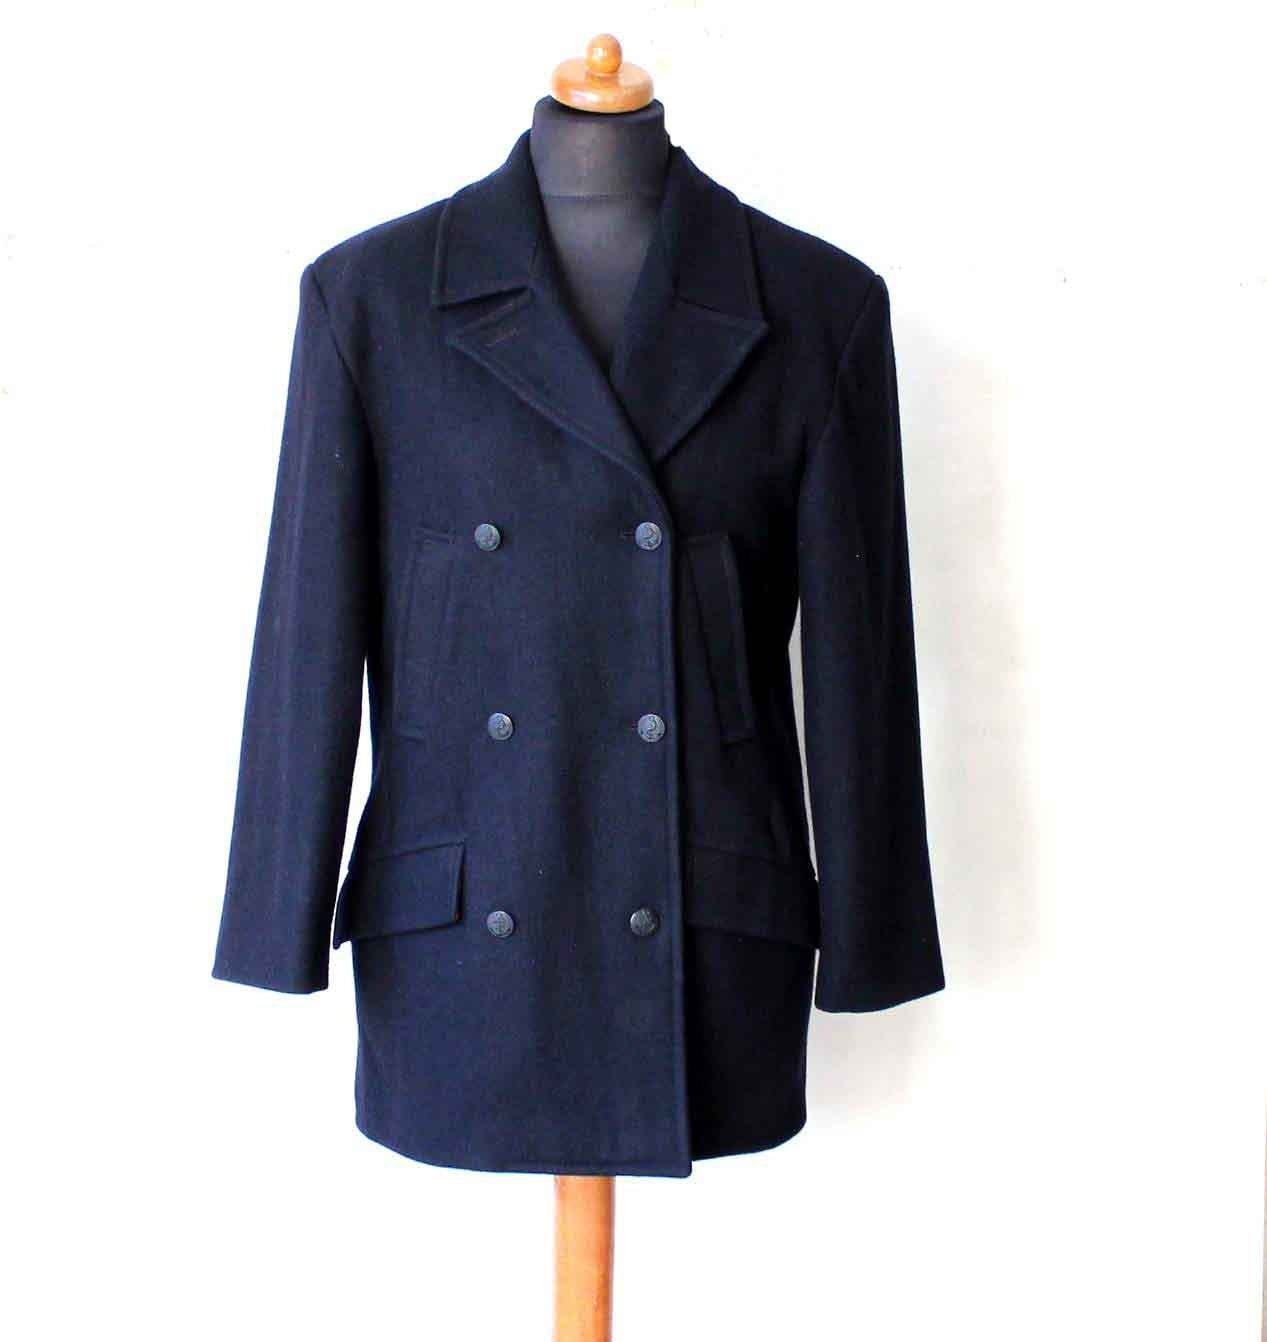 Women's US Navy Peacoat Navy Blue. Item#/SKU: PEACOAT_NAVYBLUE_W - 0 Reviews» Write a Review. View Larger Click to view additional images. Ordering Options These coats are military style coats and are a UNISEX style. When you order this coat the actual size on the label is a mans size such as 32 (Womens 4),36 (Womens 8), 40 (Womens